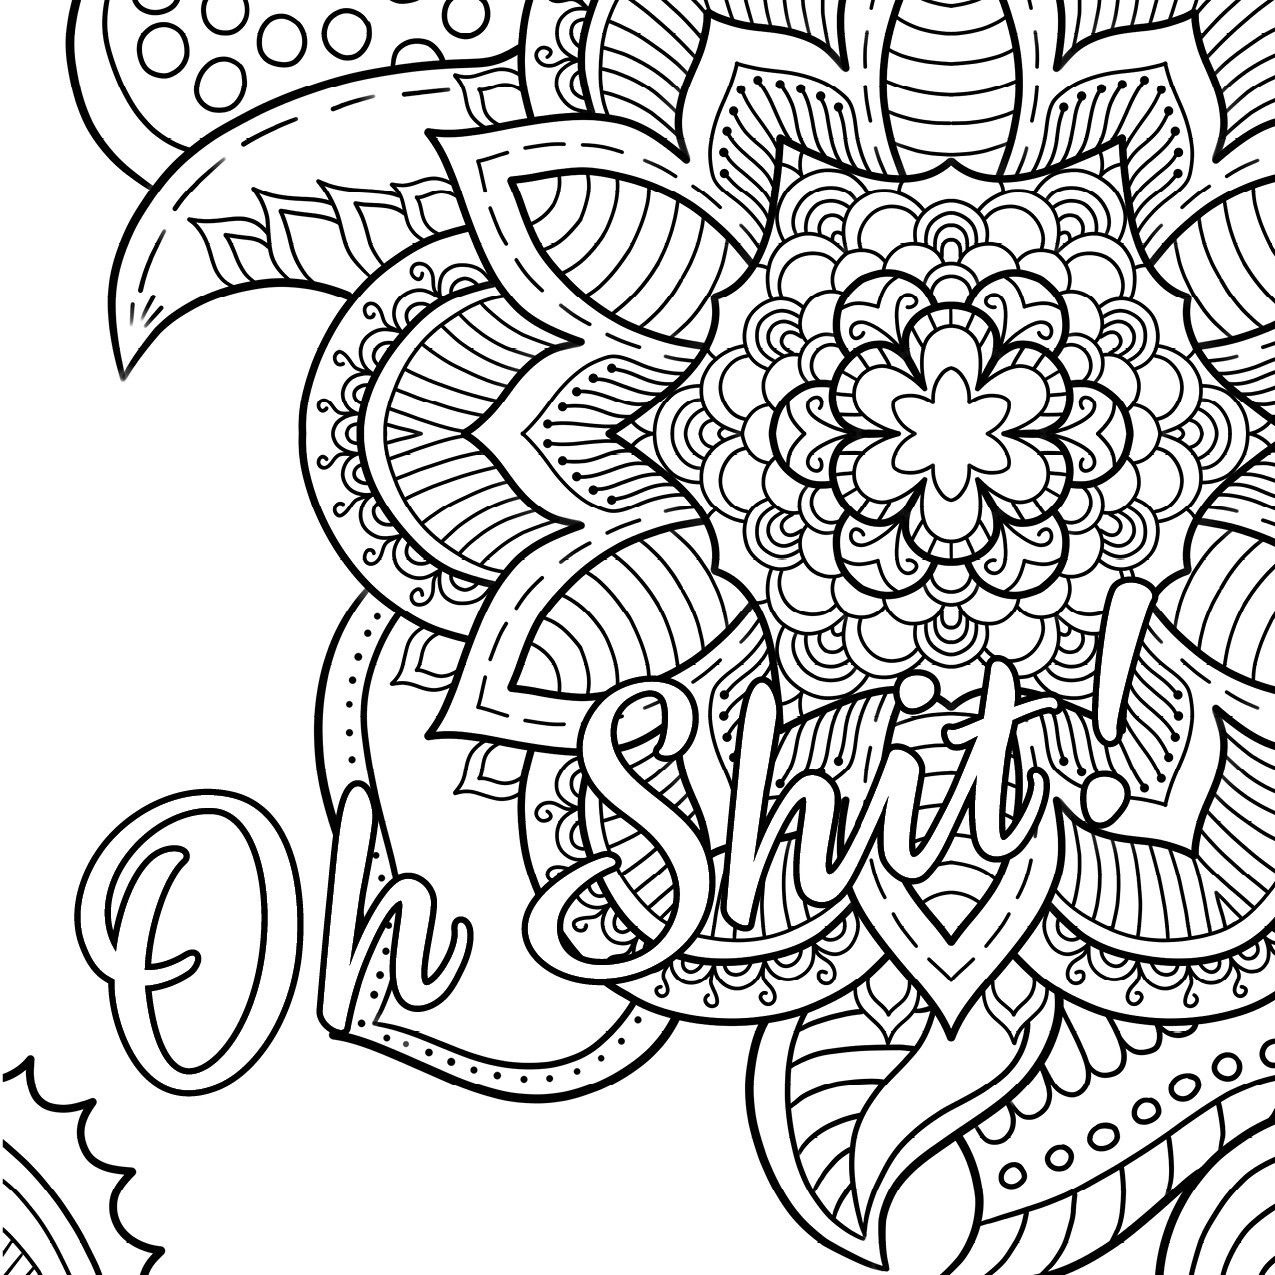 Swear Word Coloring Book #2 Free Printable Coloring Pages For Adults - Swear Word Coloring Pages Printable Free